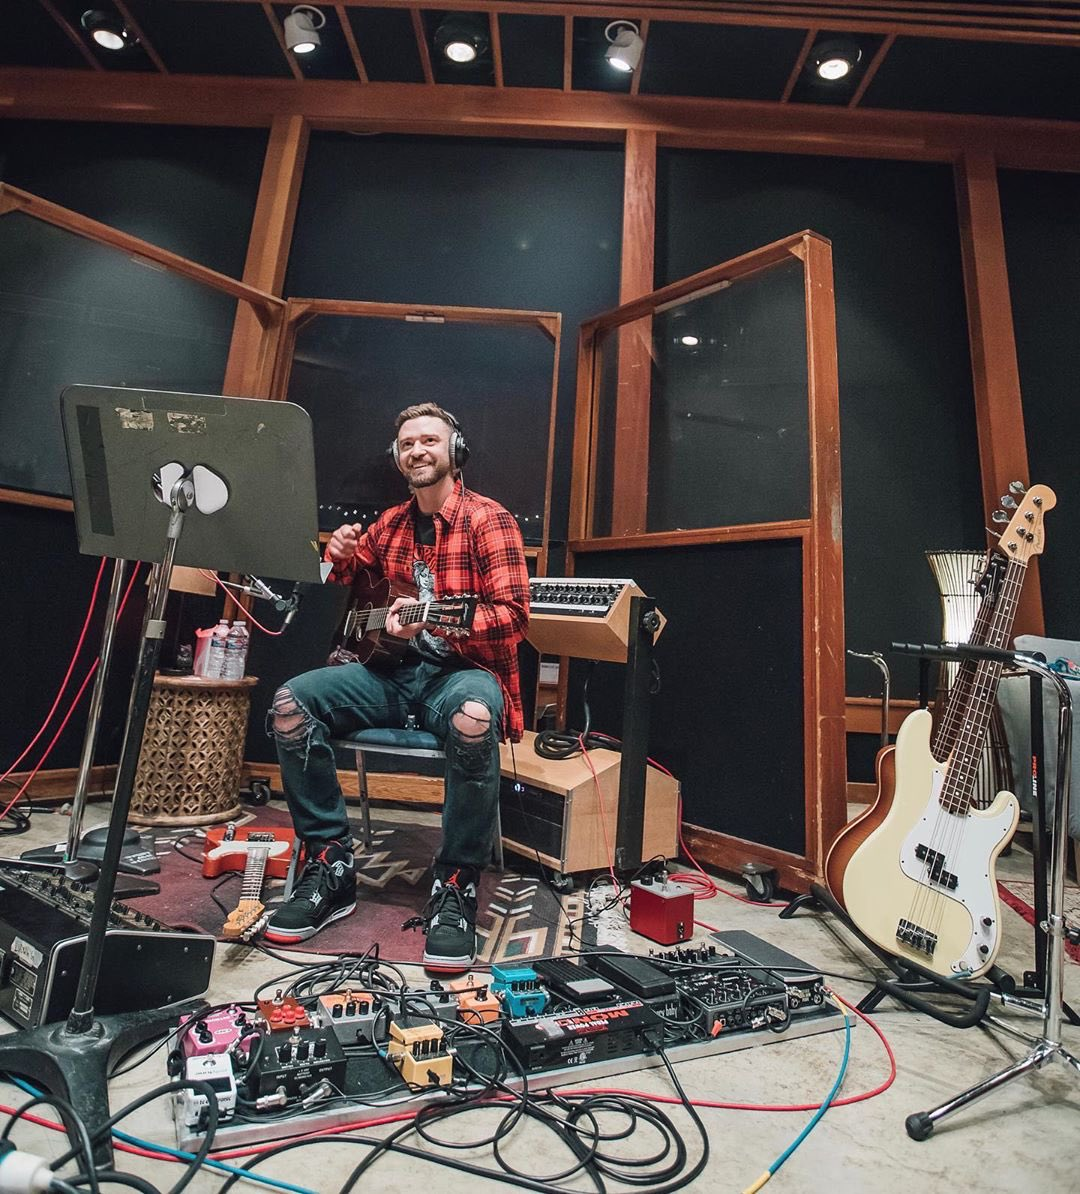 .@JTimberlake broke out Jordans for new studio sessions 🎸